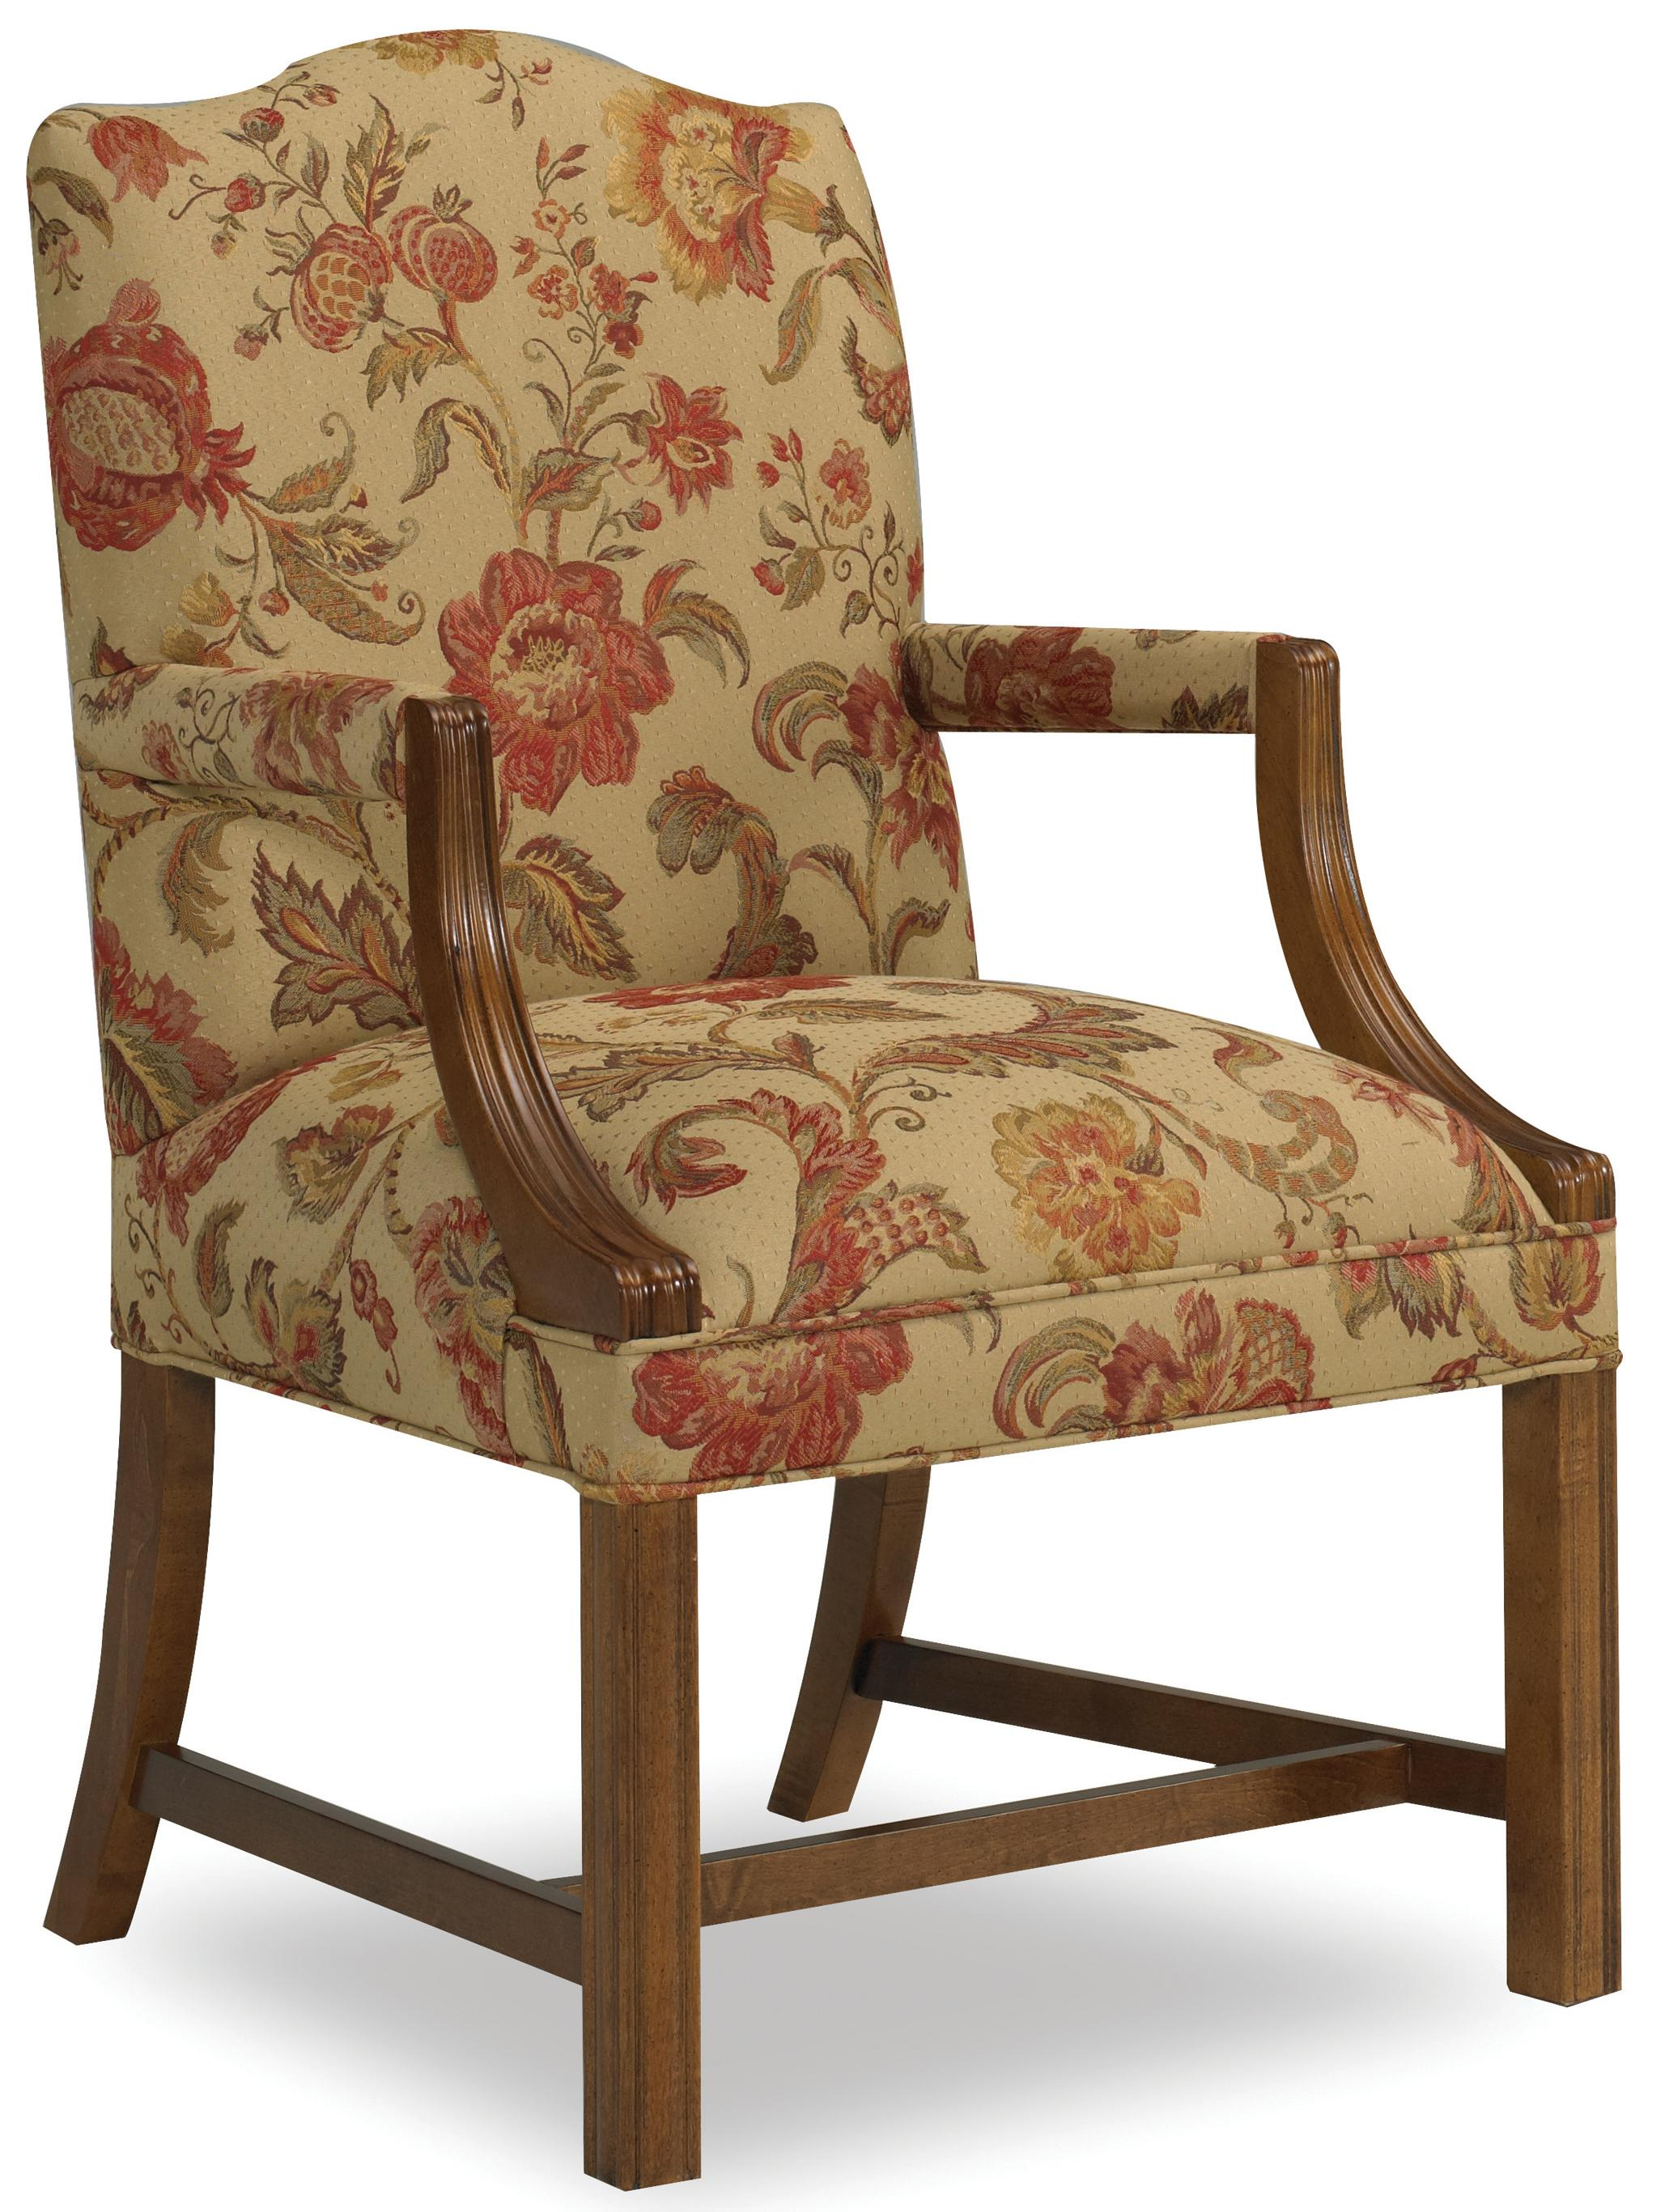 Martha Exposed Wood Arm Chair by Sam Moore at Baer's Furniture